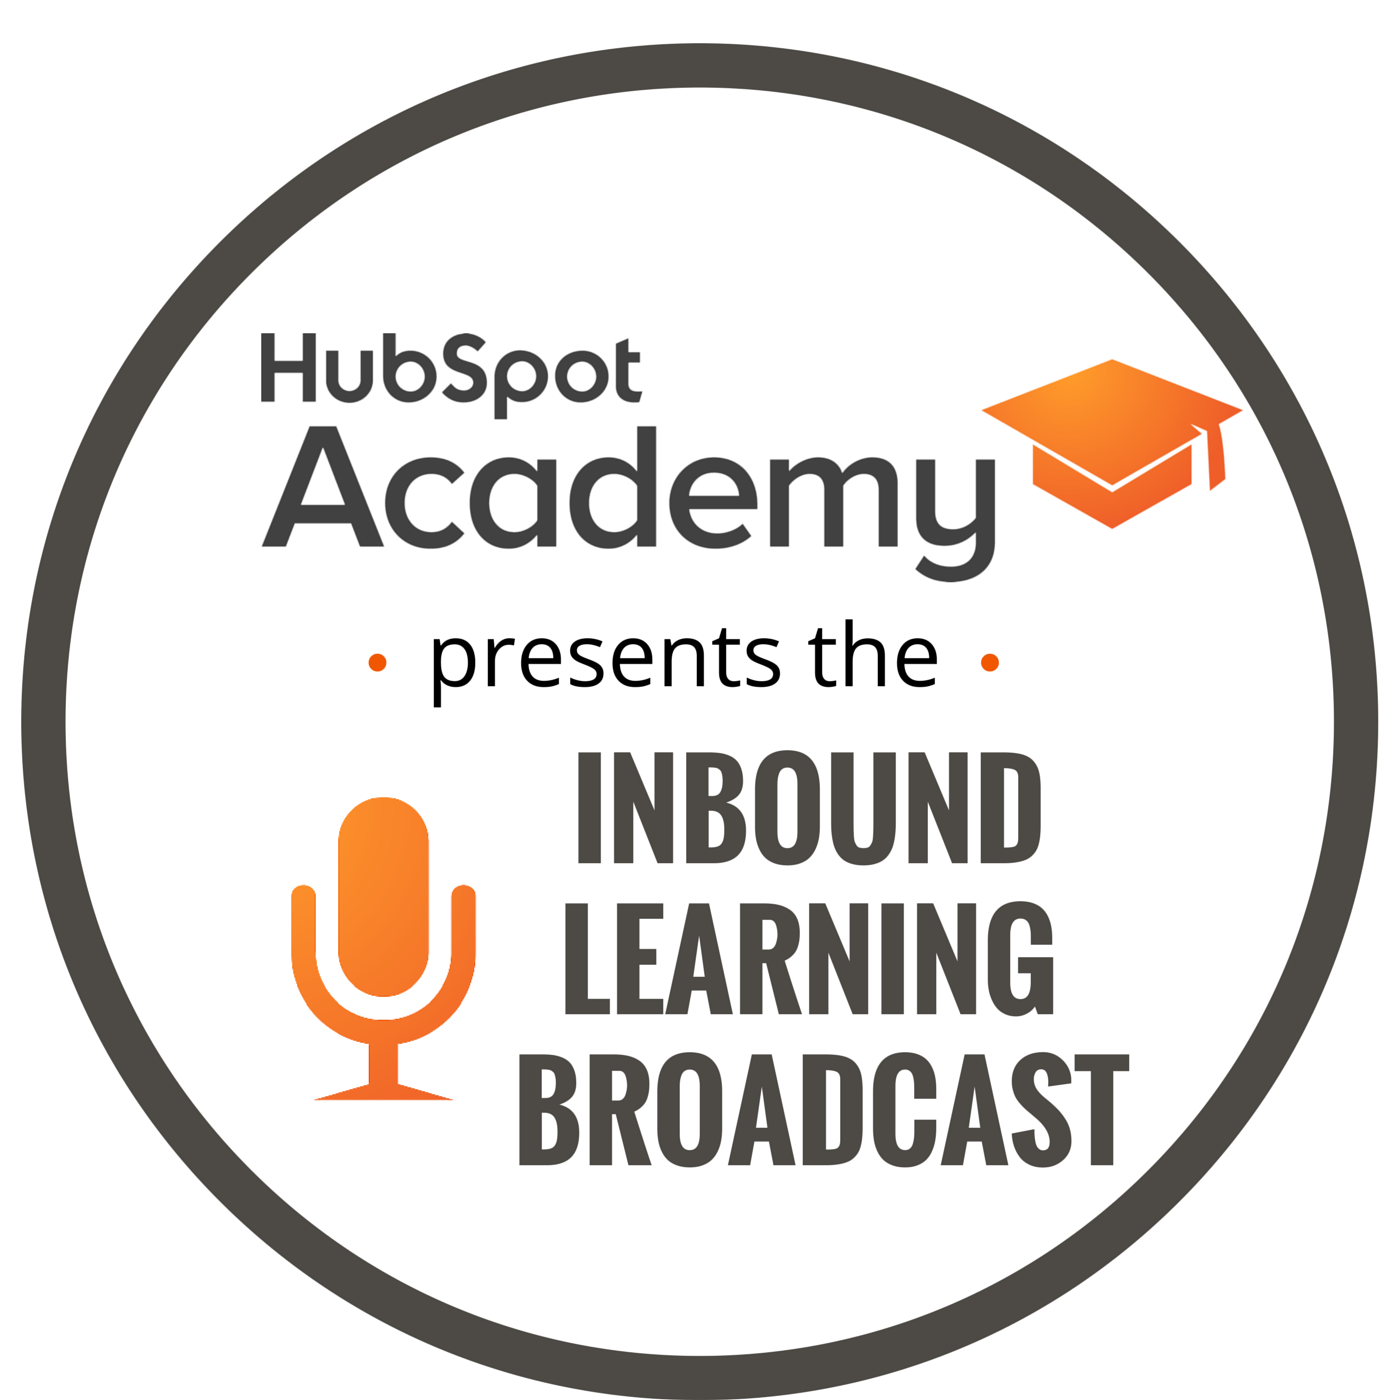 BROADCAST - Inbound Learning Broadcast